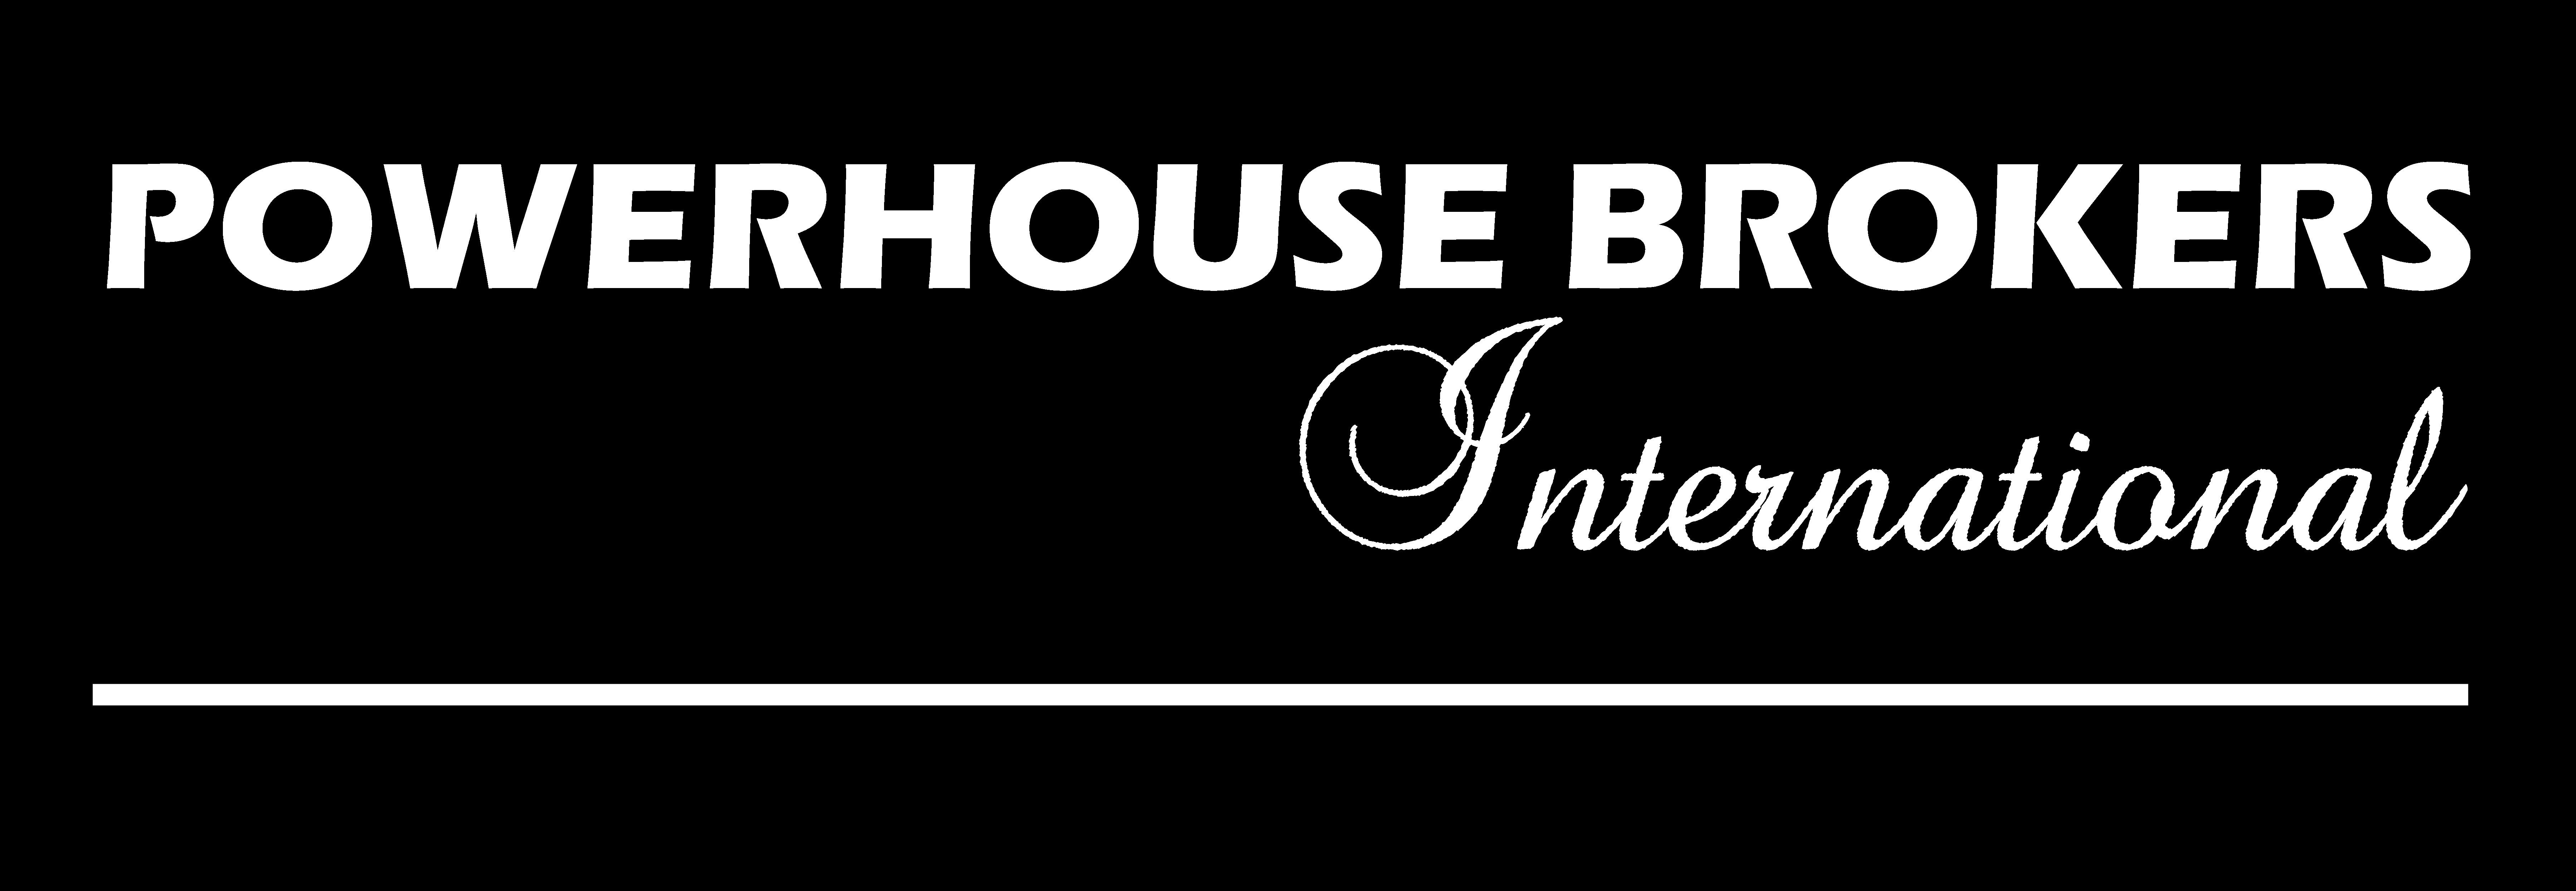 Powerhouse Brokers Int'l